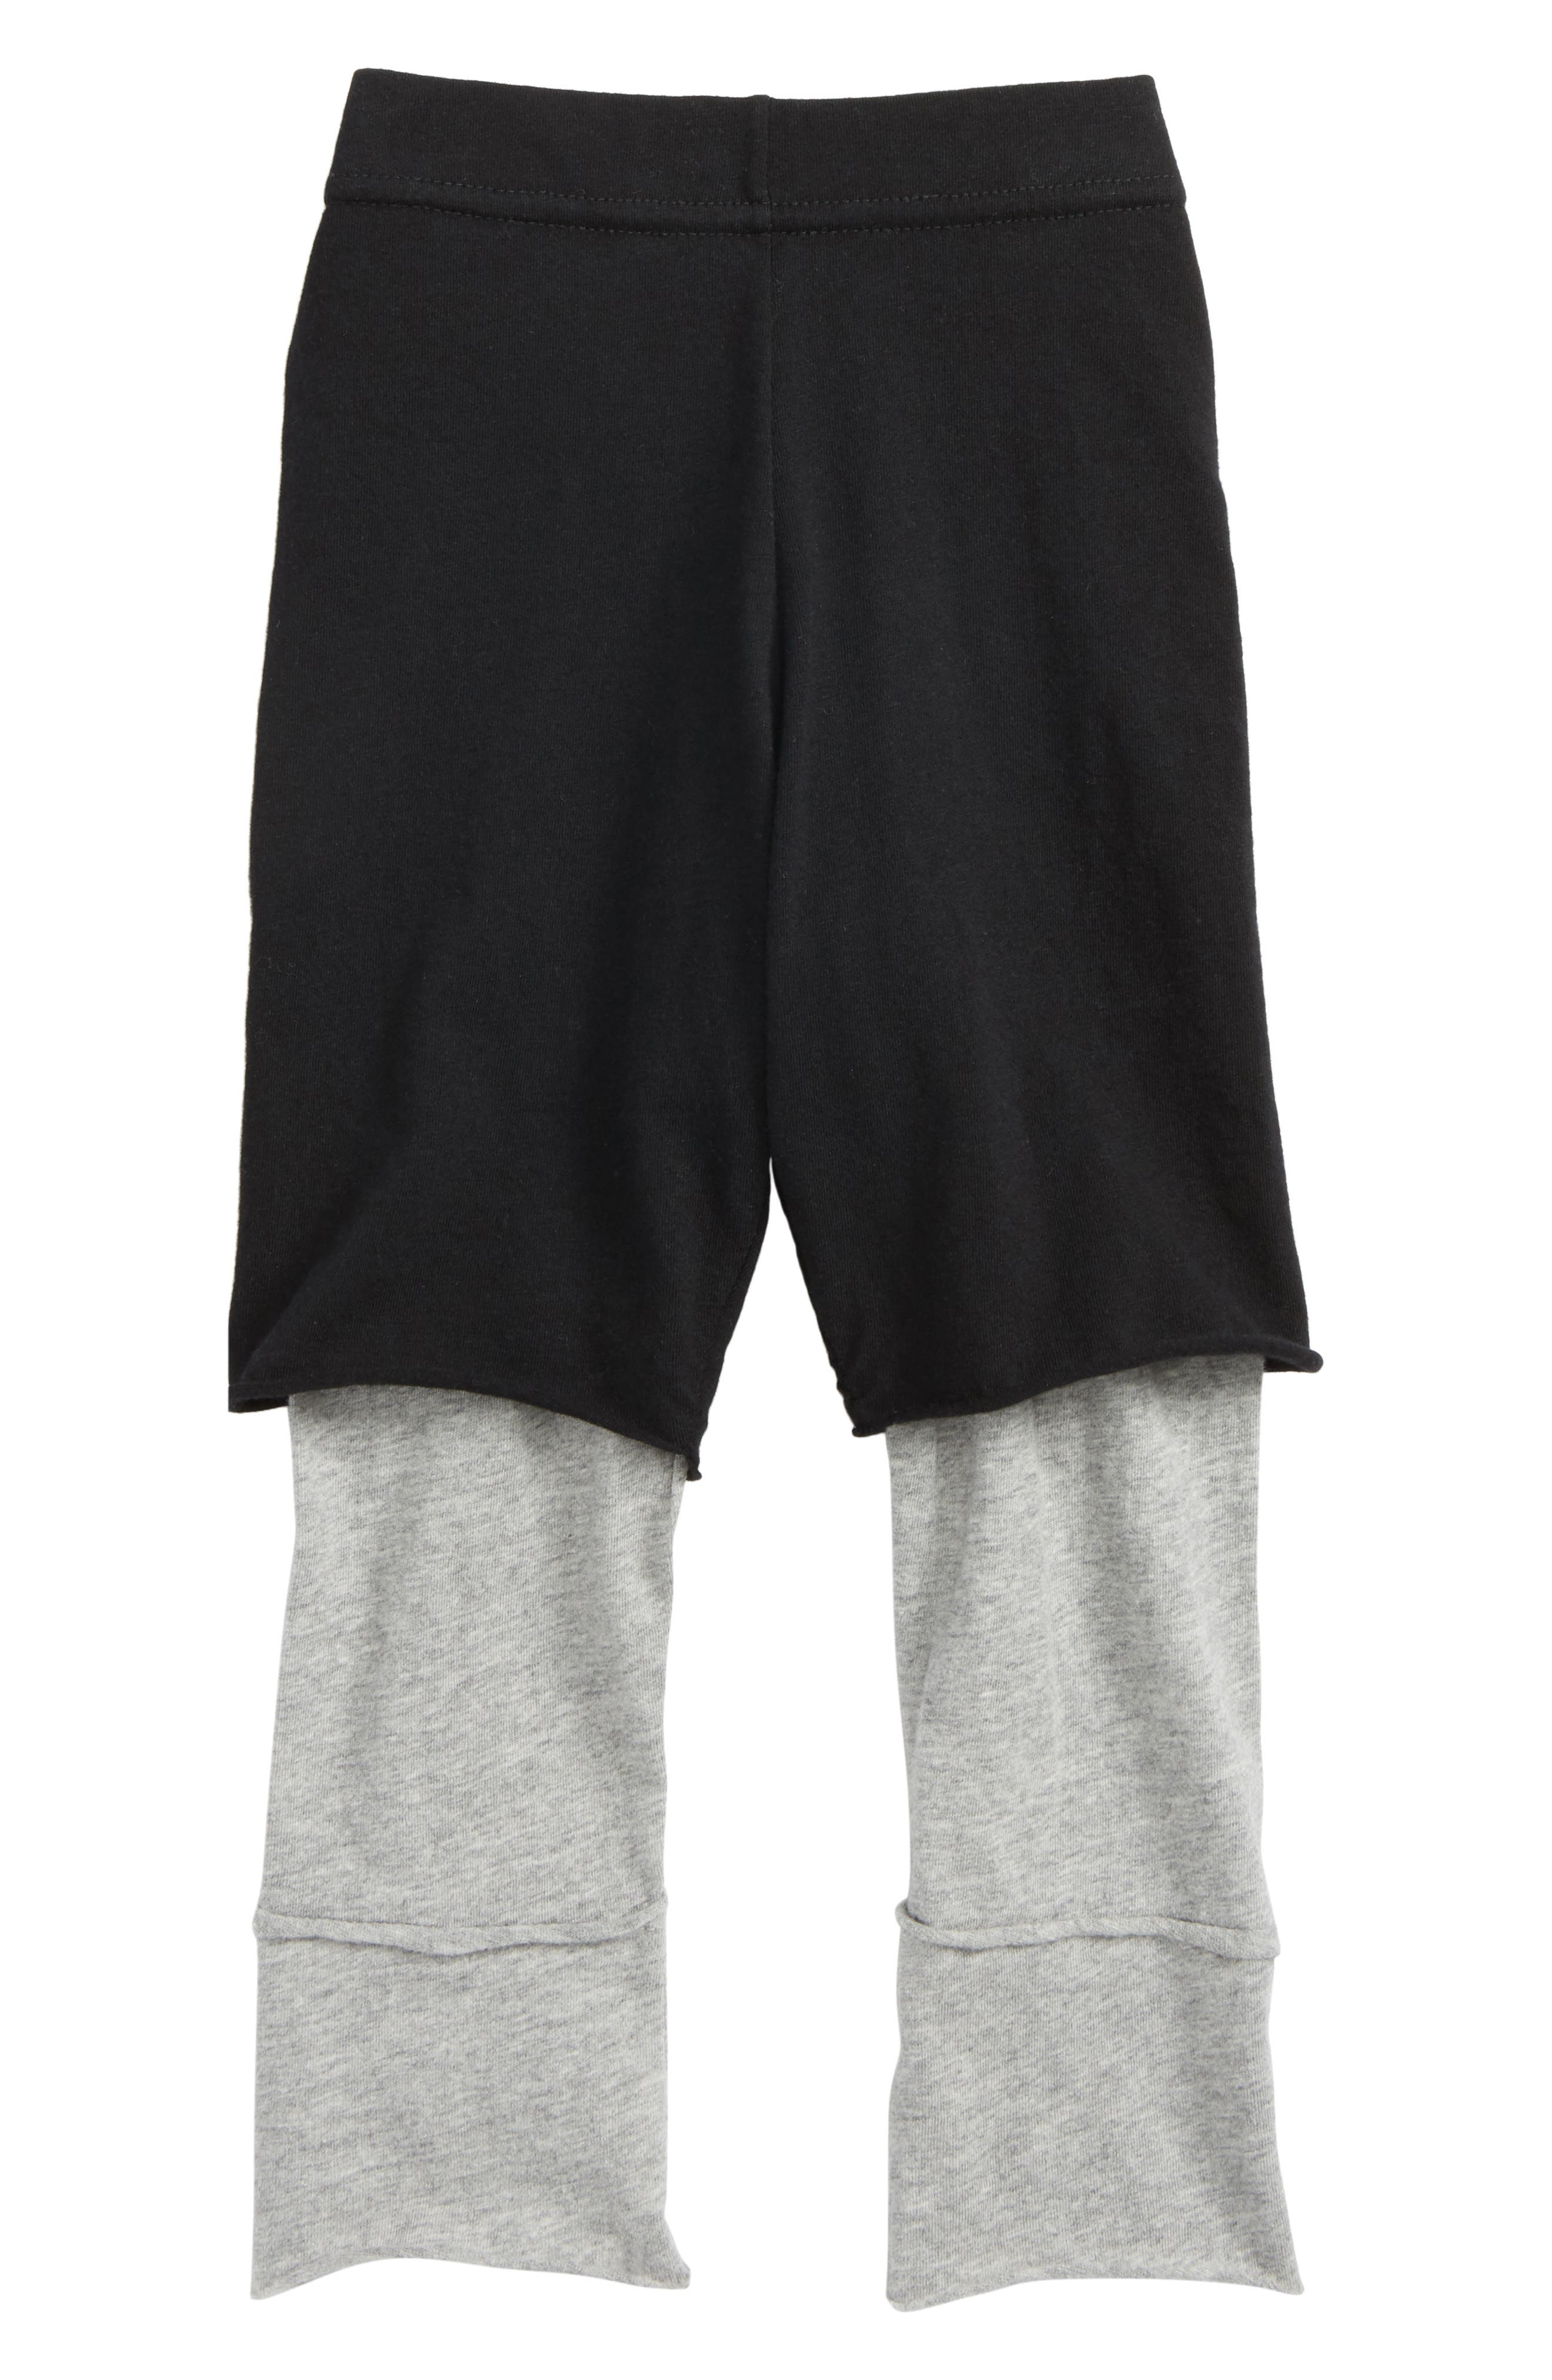 One on One Layered Pants,                             Main thumbnail 1, color,                             Black/ Heather Grey